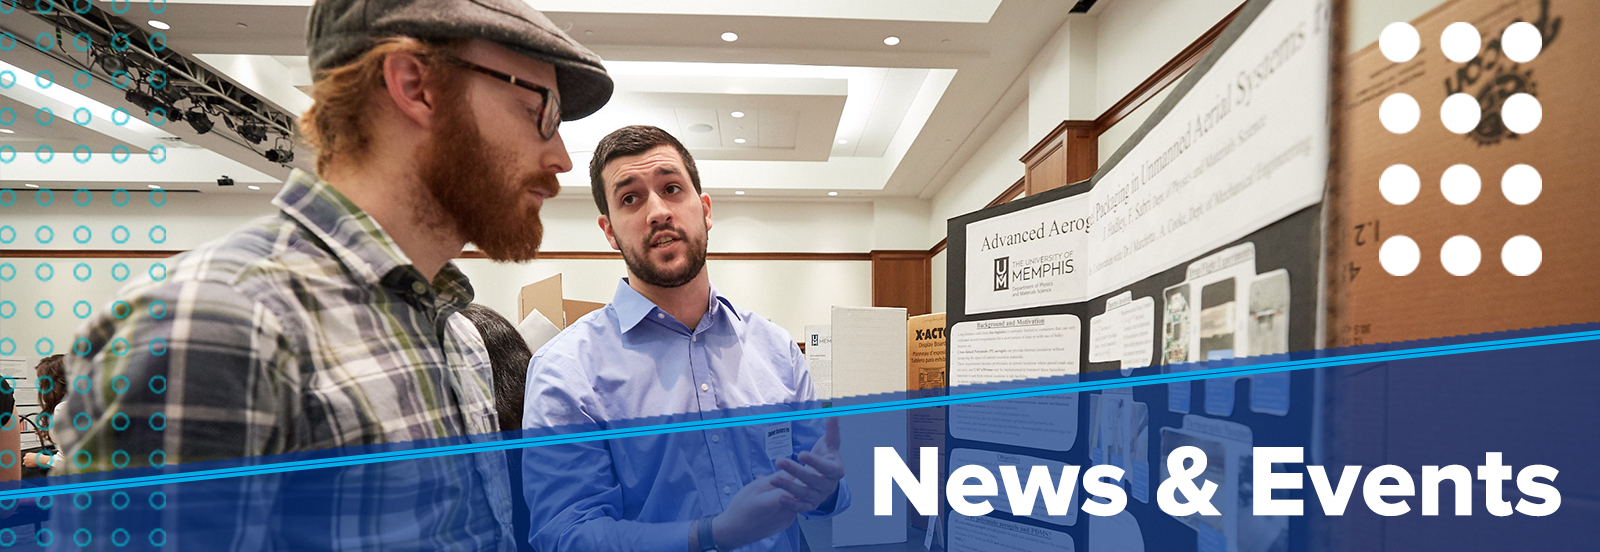 News & Events (photo of student presenting research board to other student)